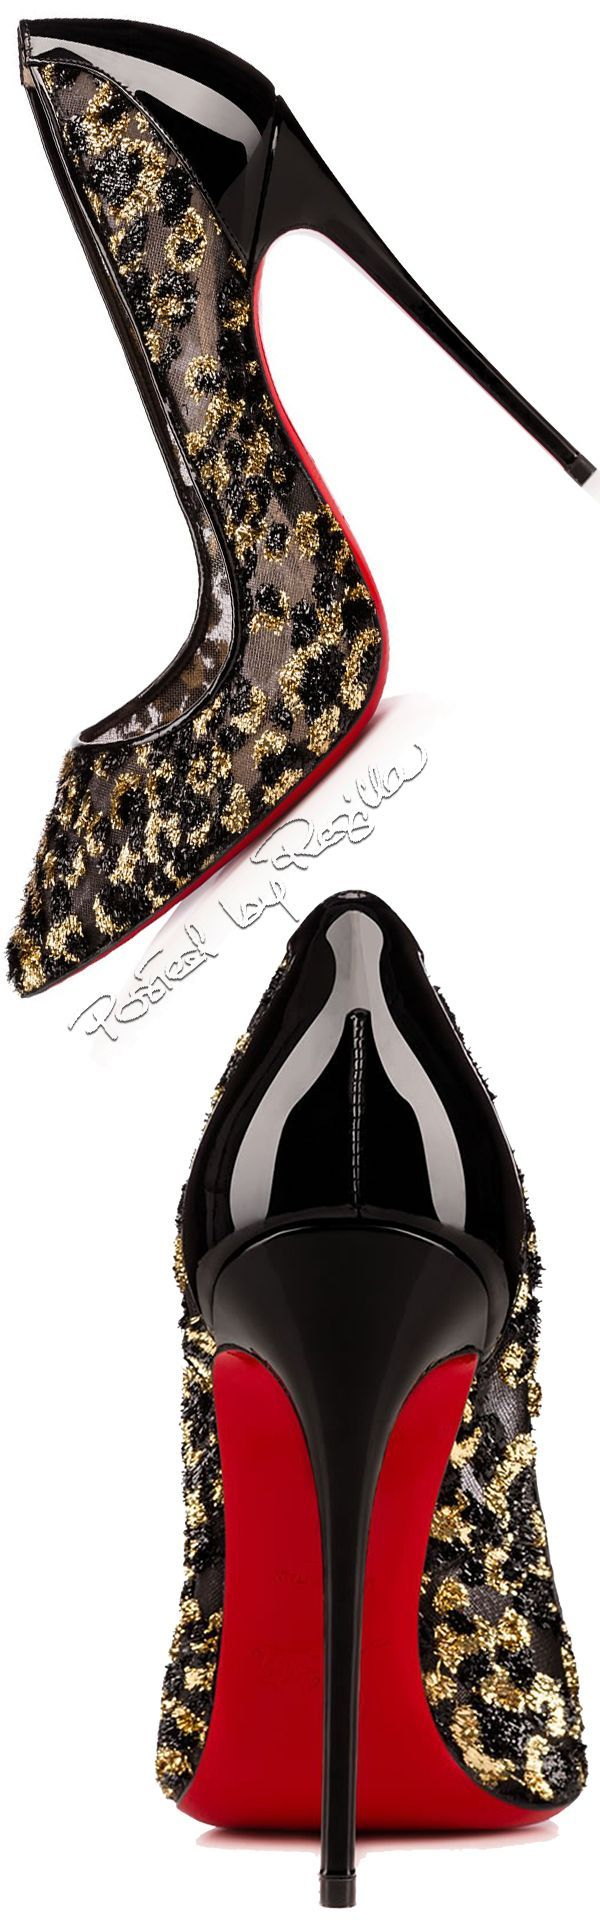 chaussure louboutin femme 2017